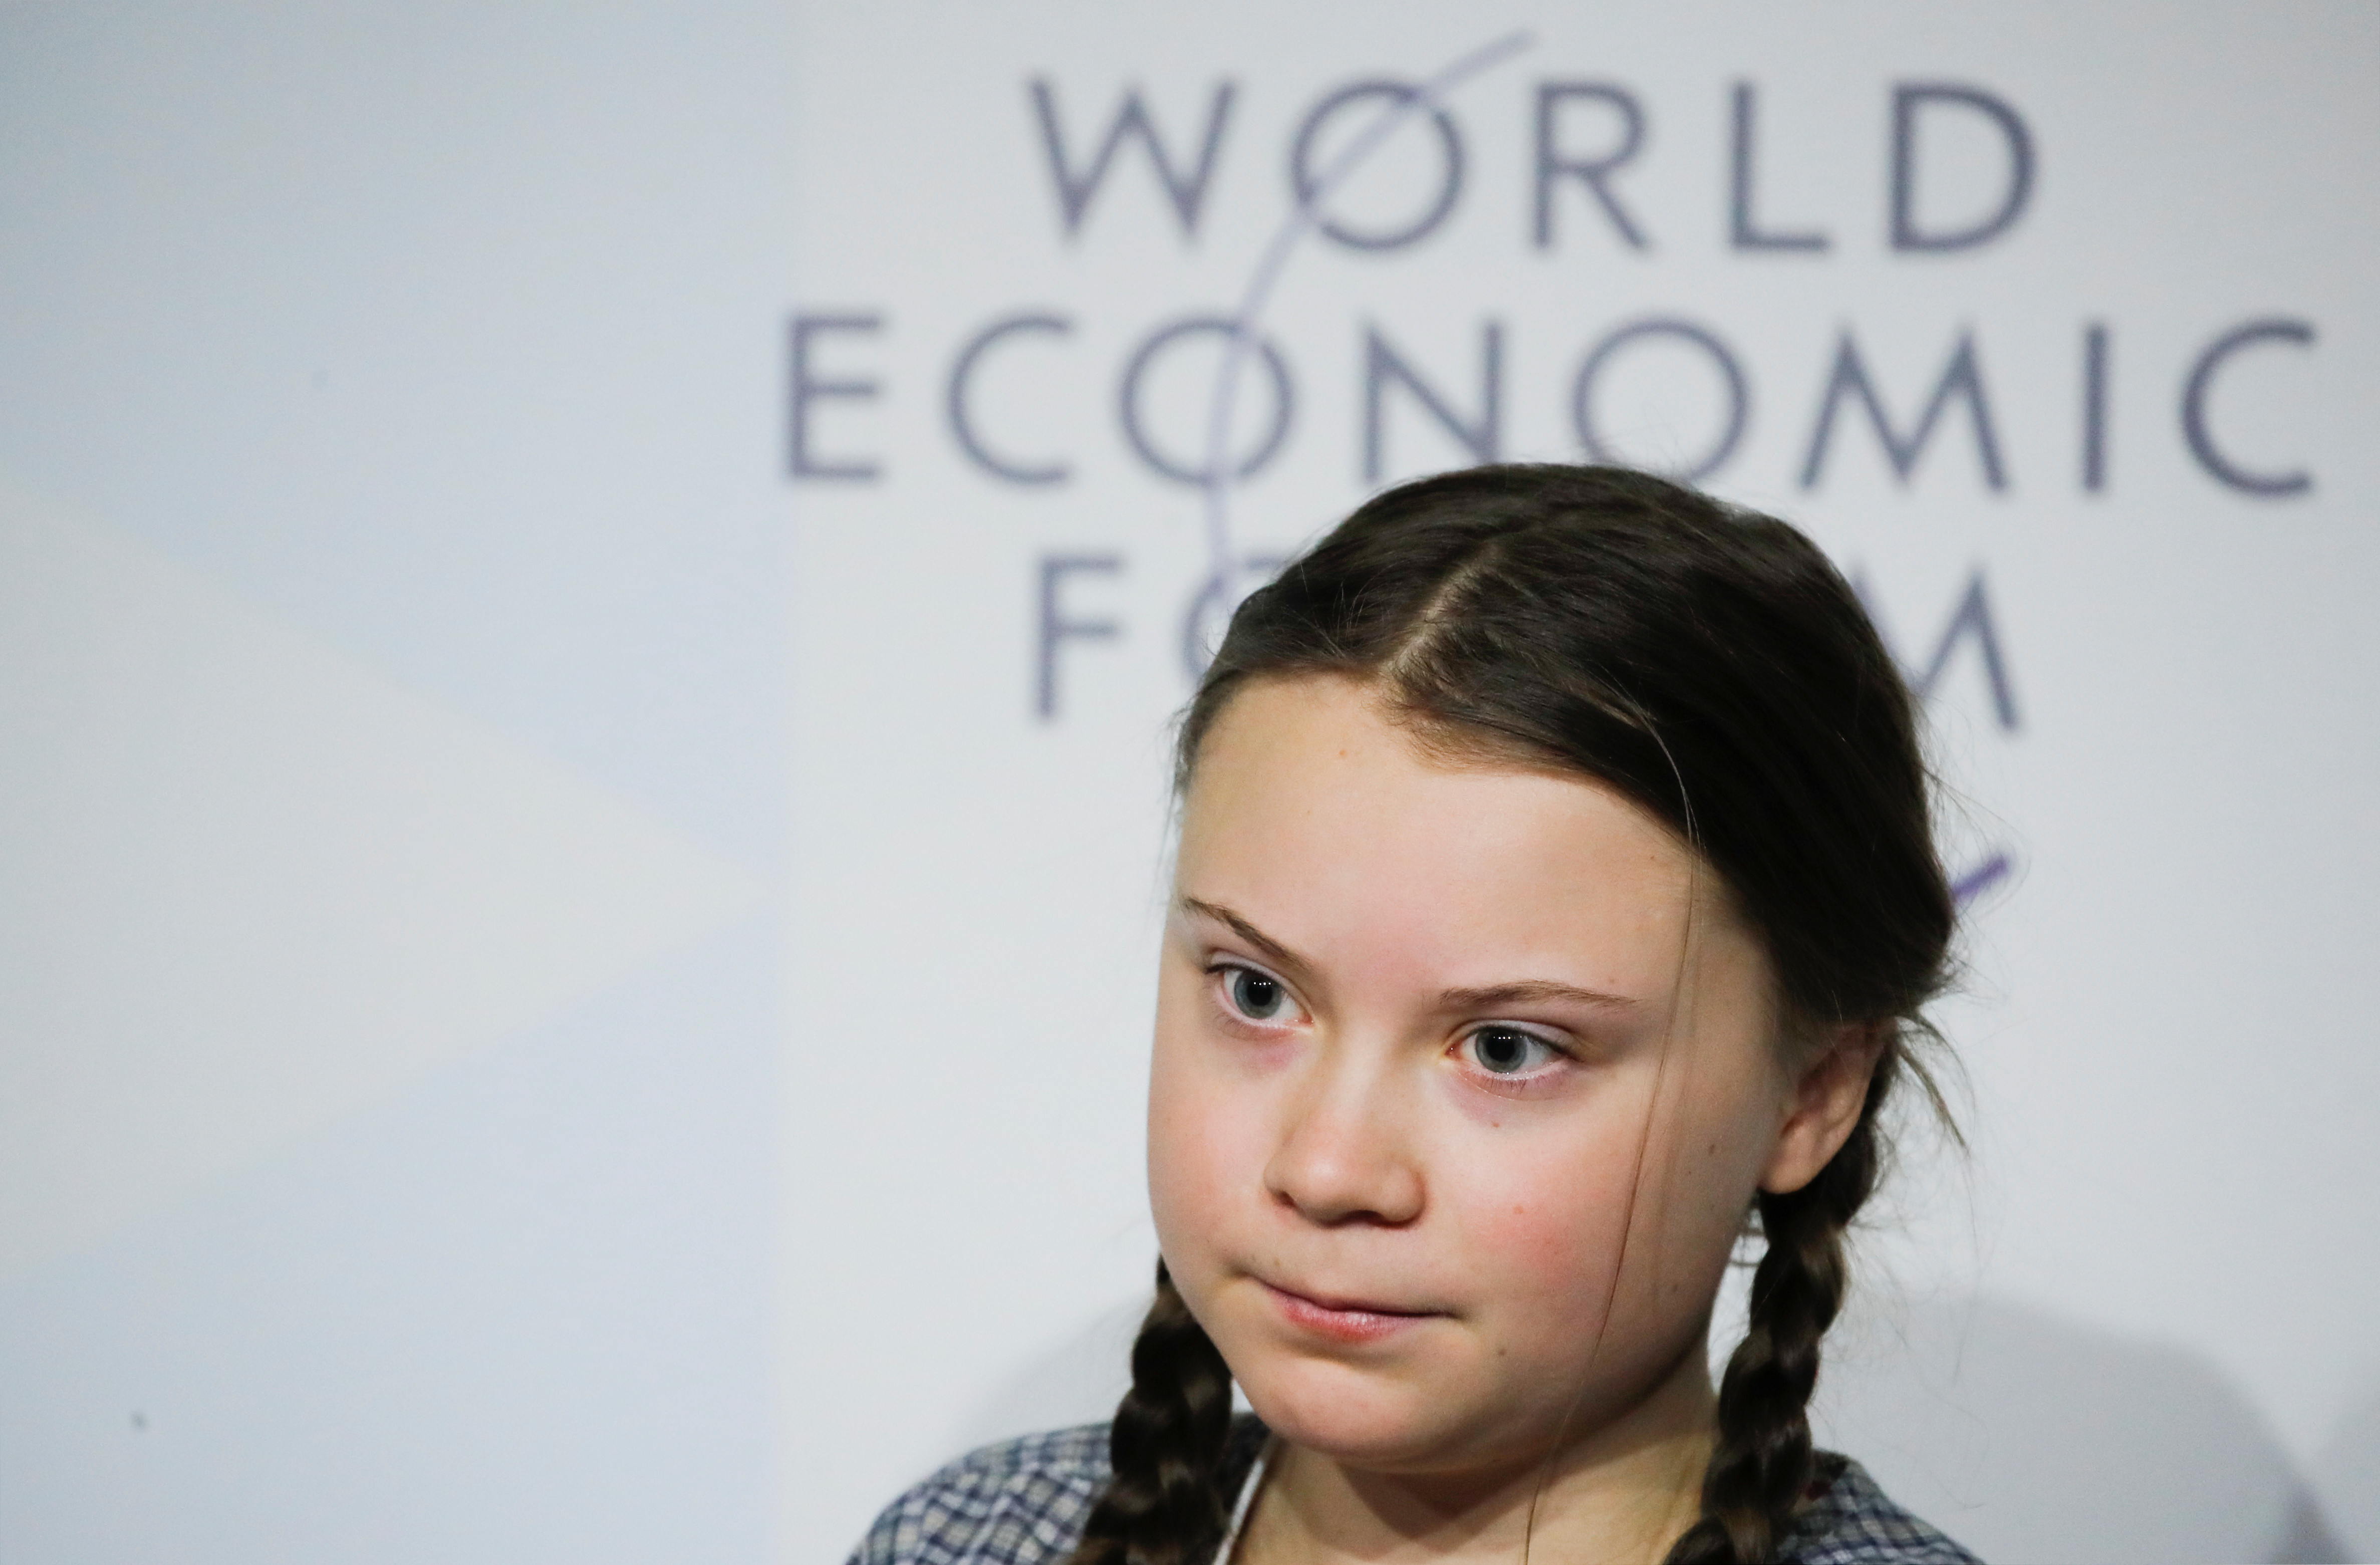 Swedish environmental activist Greta Thunberg speaks at the World Economic Forum Annual Meeting in January.